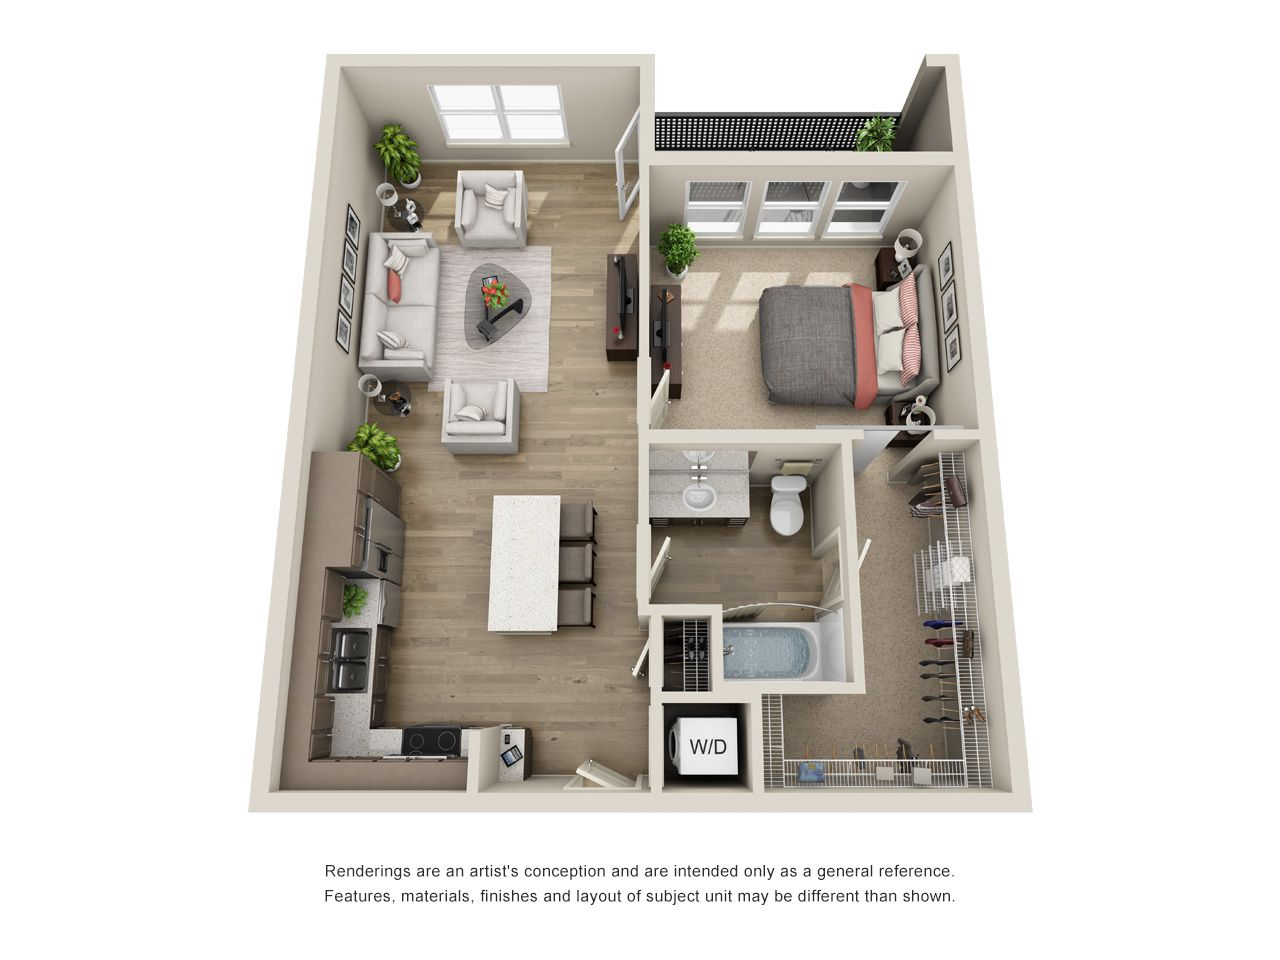 A4 1x1 821 Sq Ft Sims House Plans Modern House Floor Plans Small House Plans